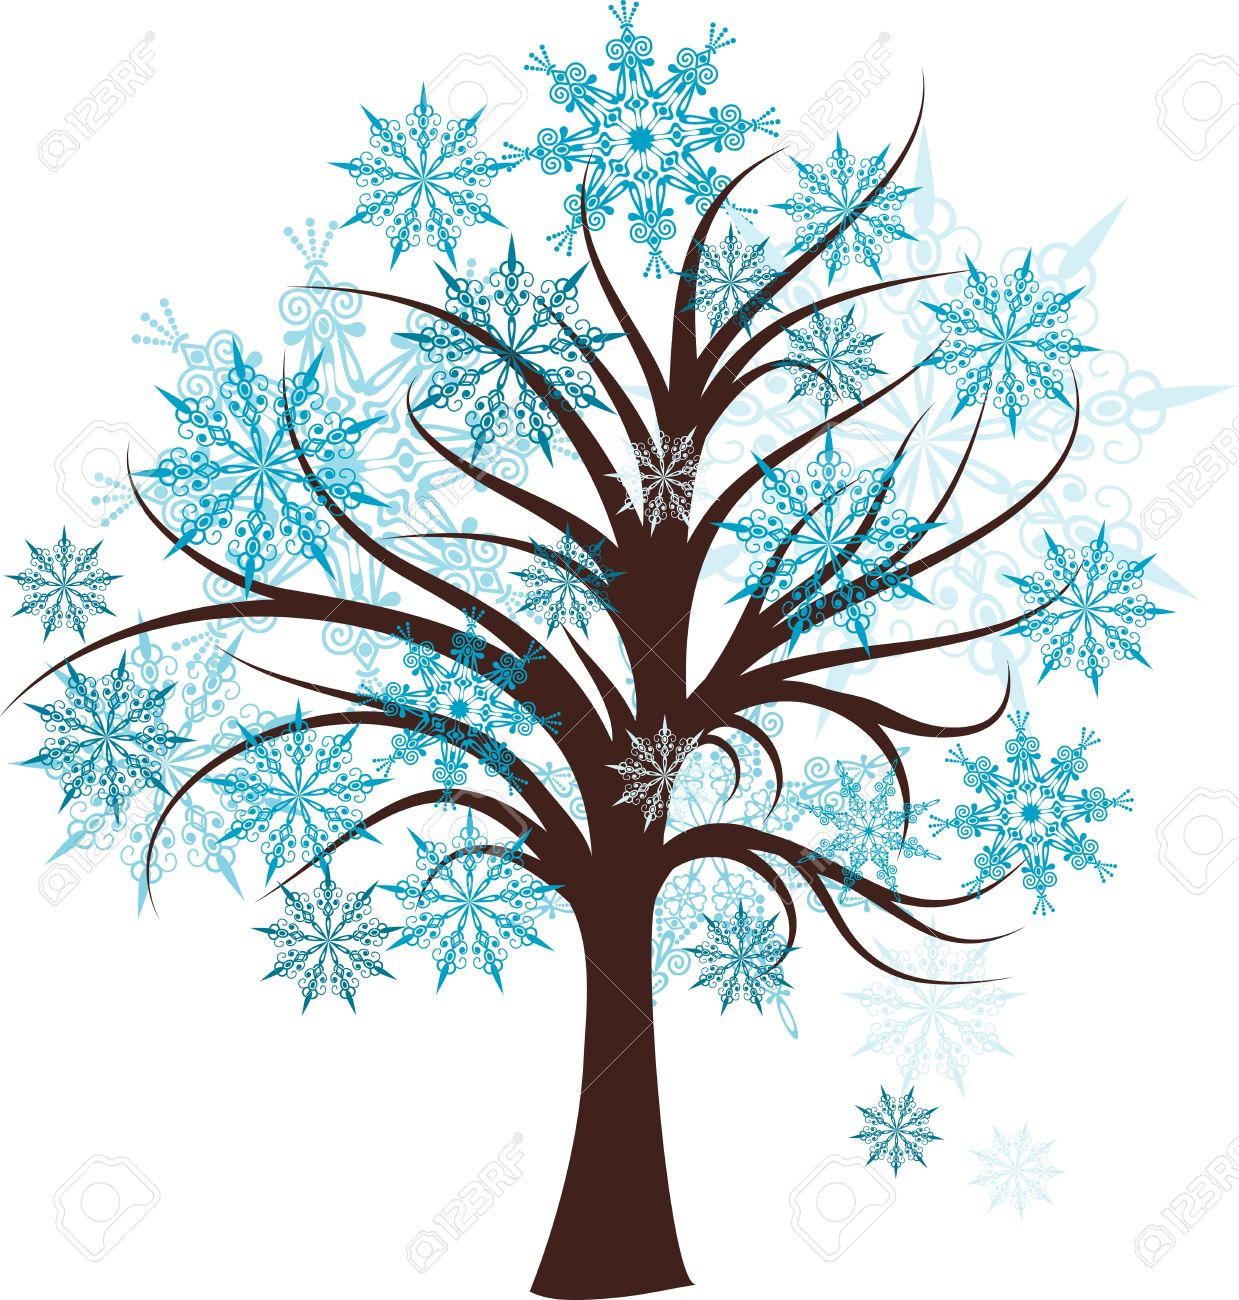 541 Winter Tree free clipart.